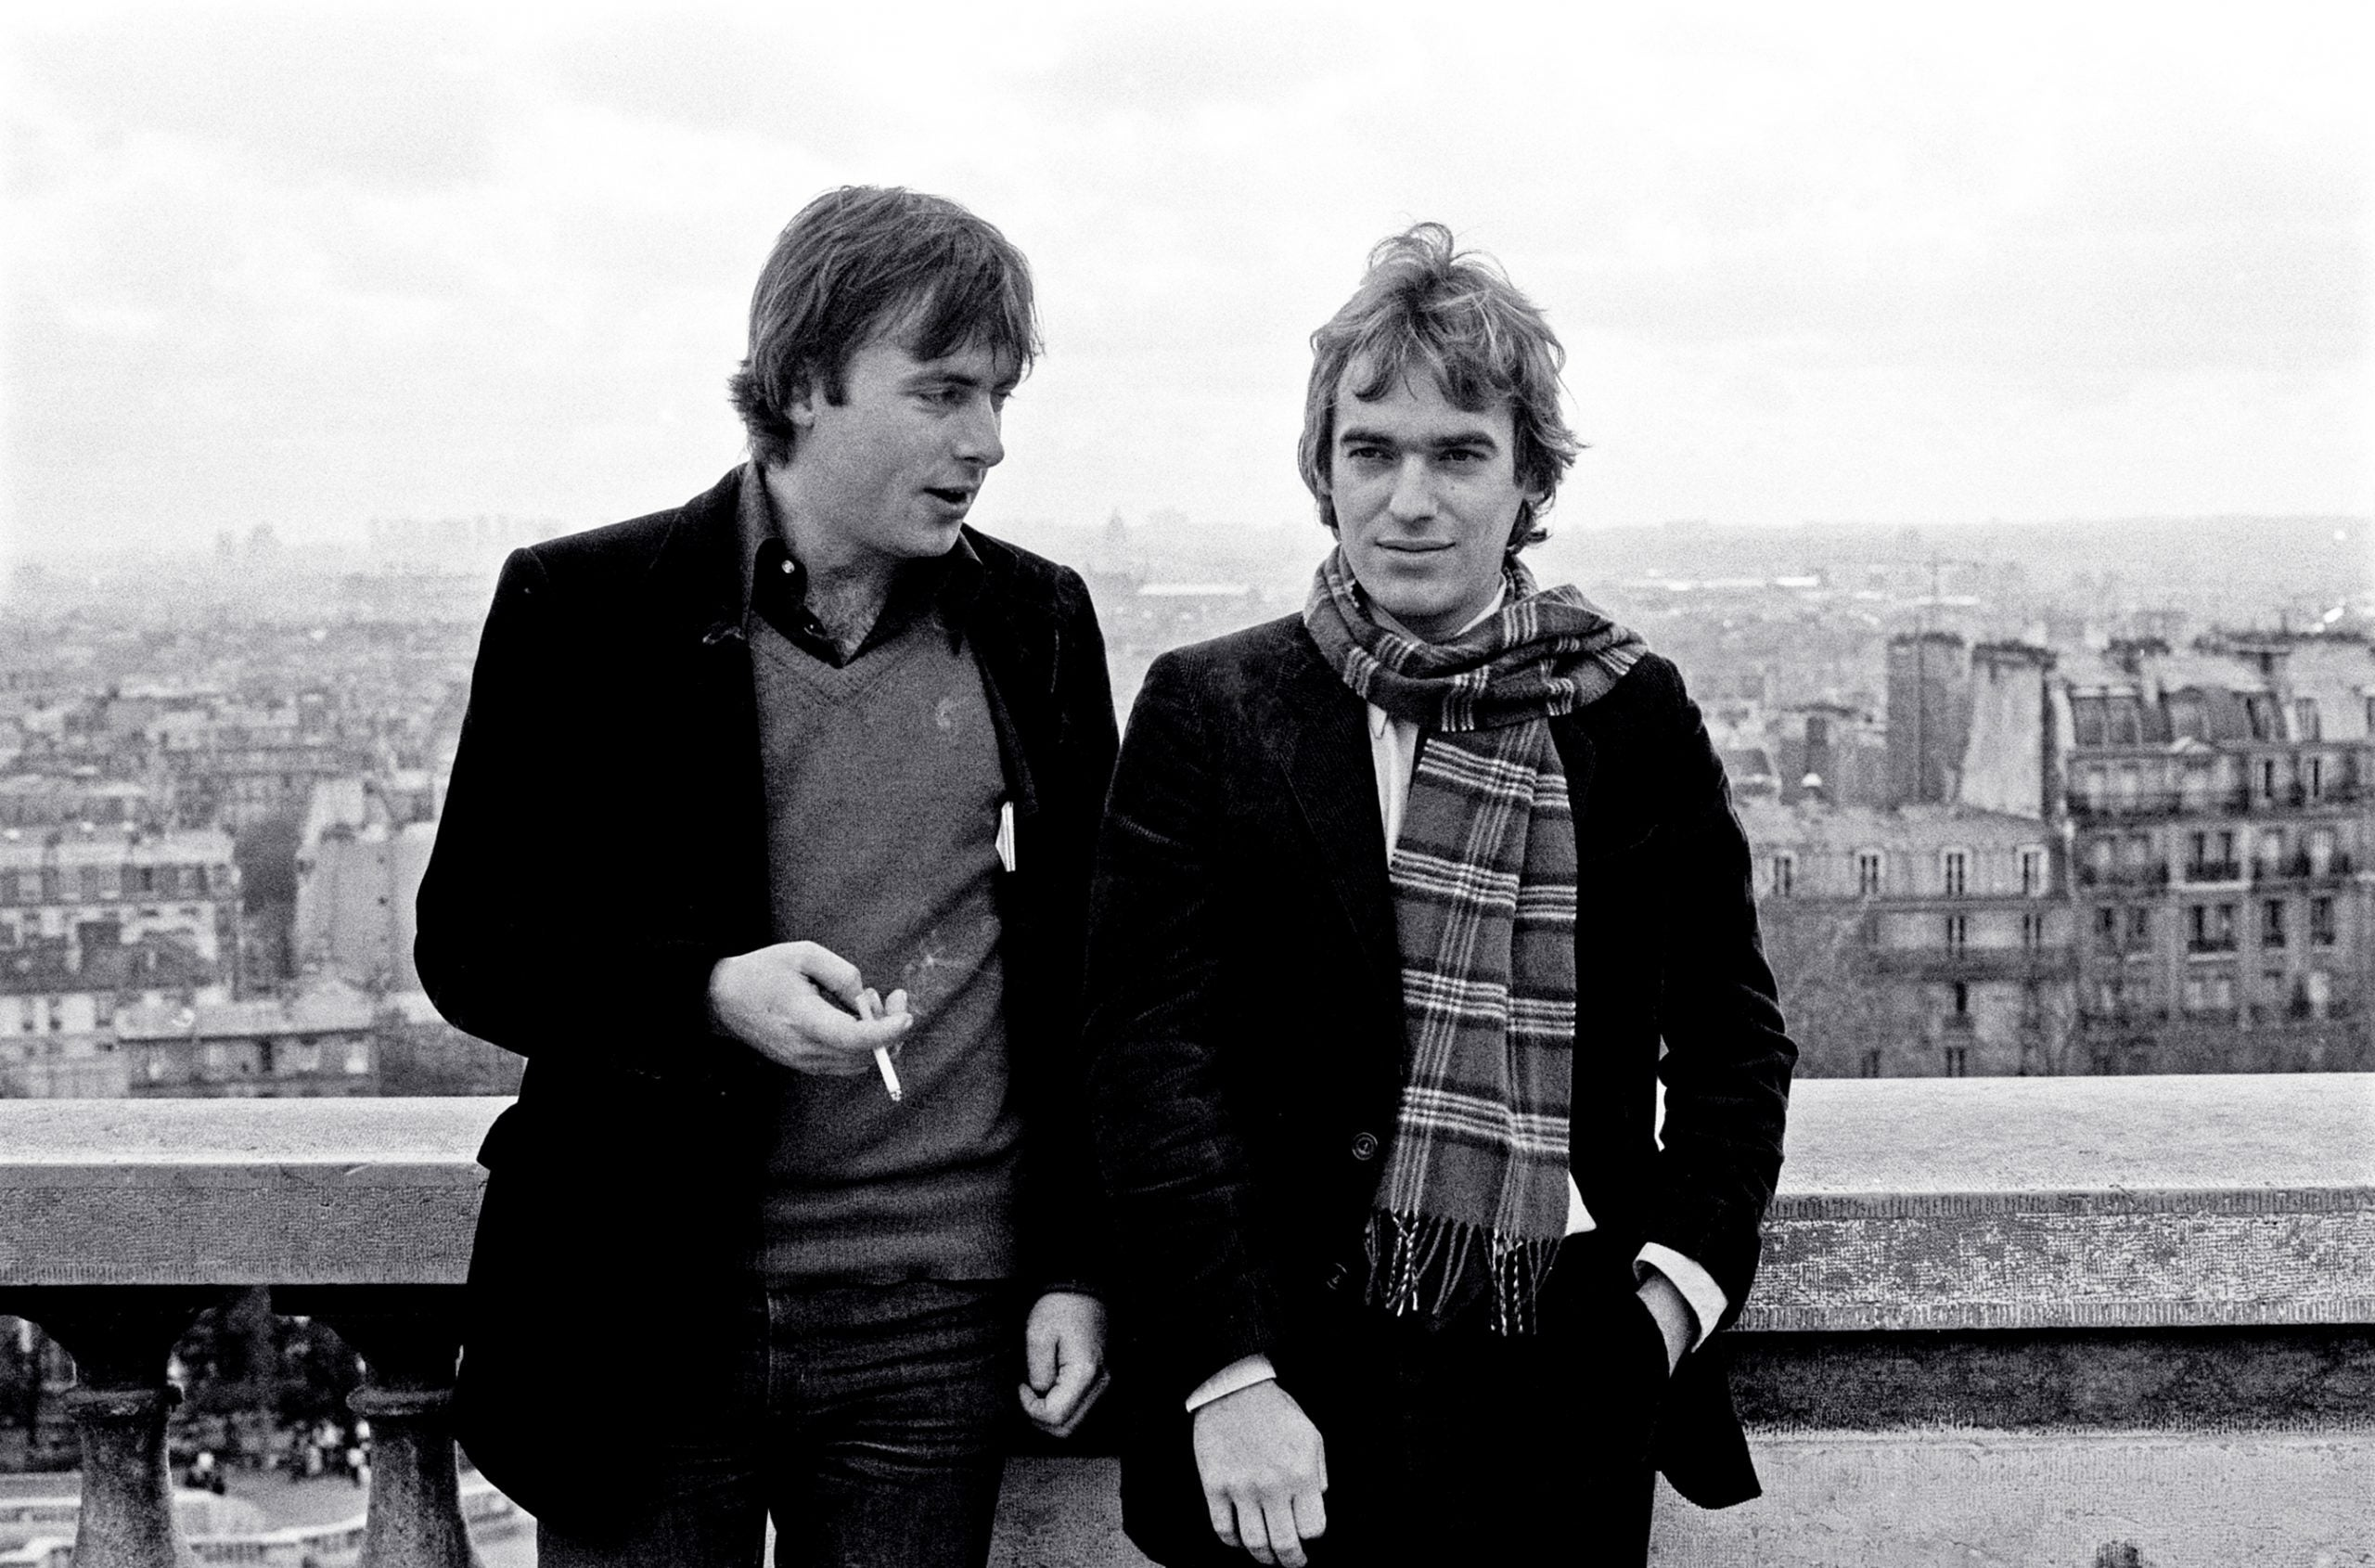 Martin Amis, Christopher Hitchens and the long road to reaction